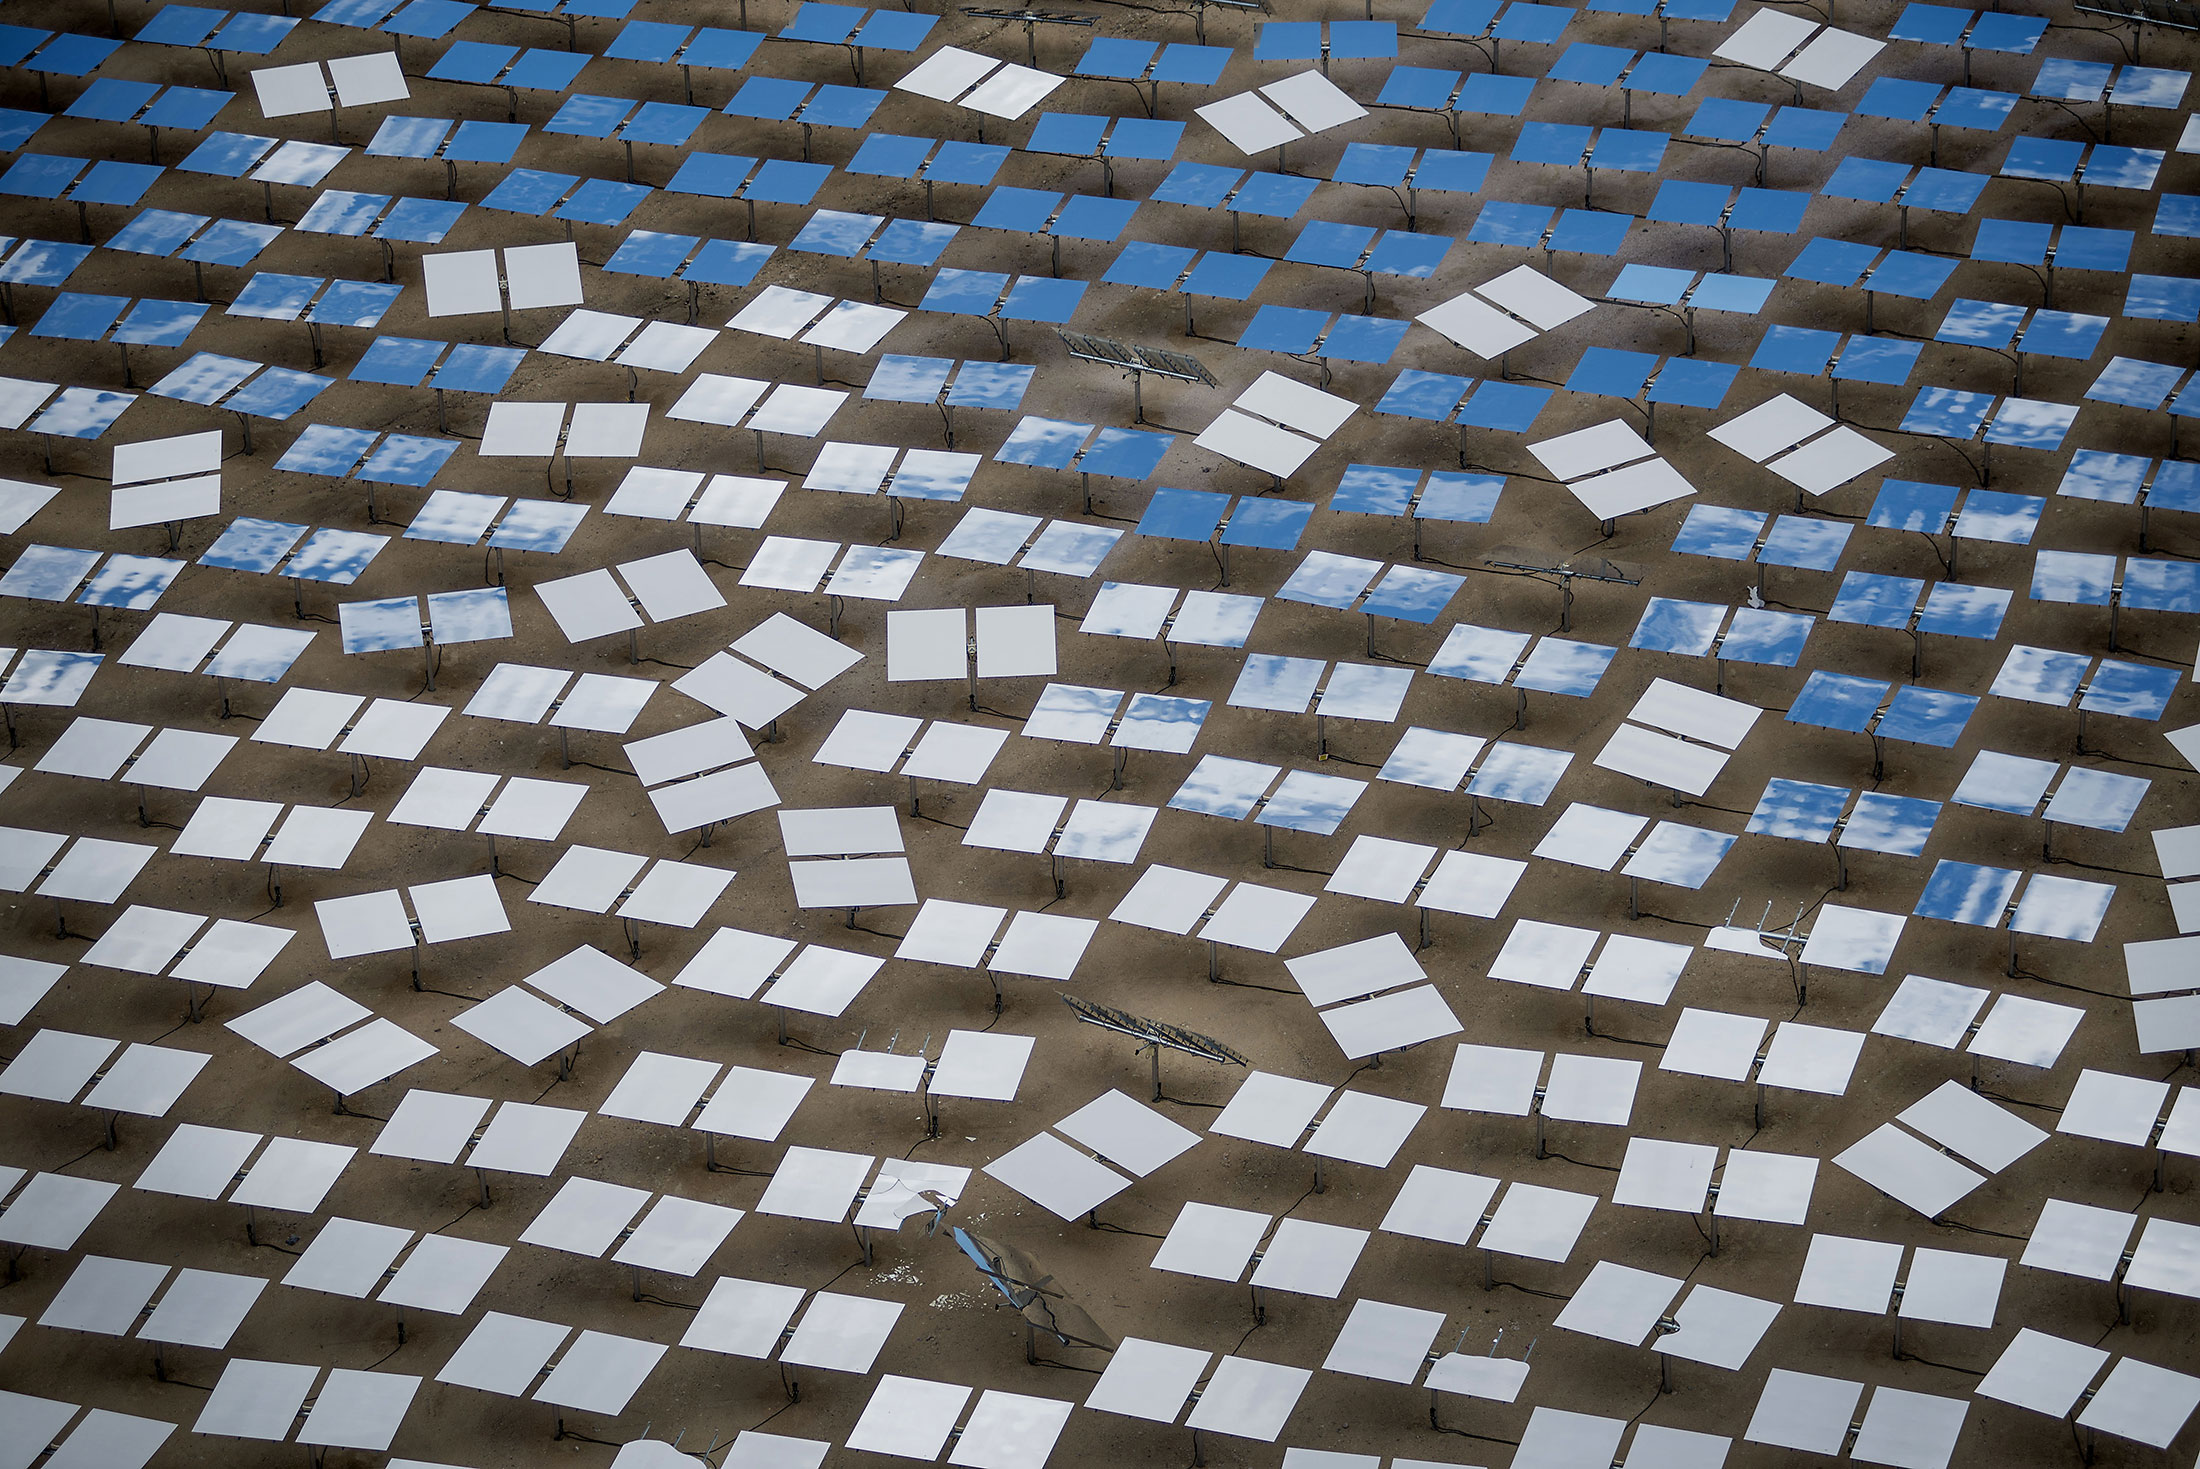 Mirrors stand at the Ivanpah Solar Electric Generating System in the Mojave Desert near Primm, Nevada.